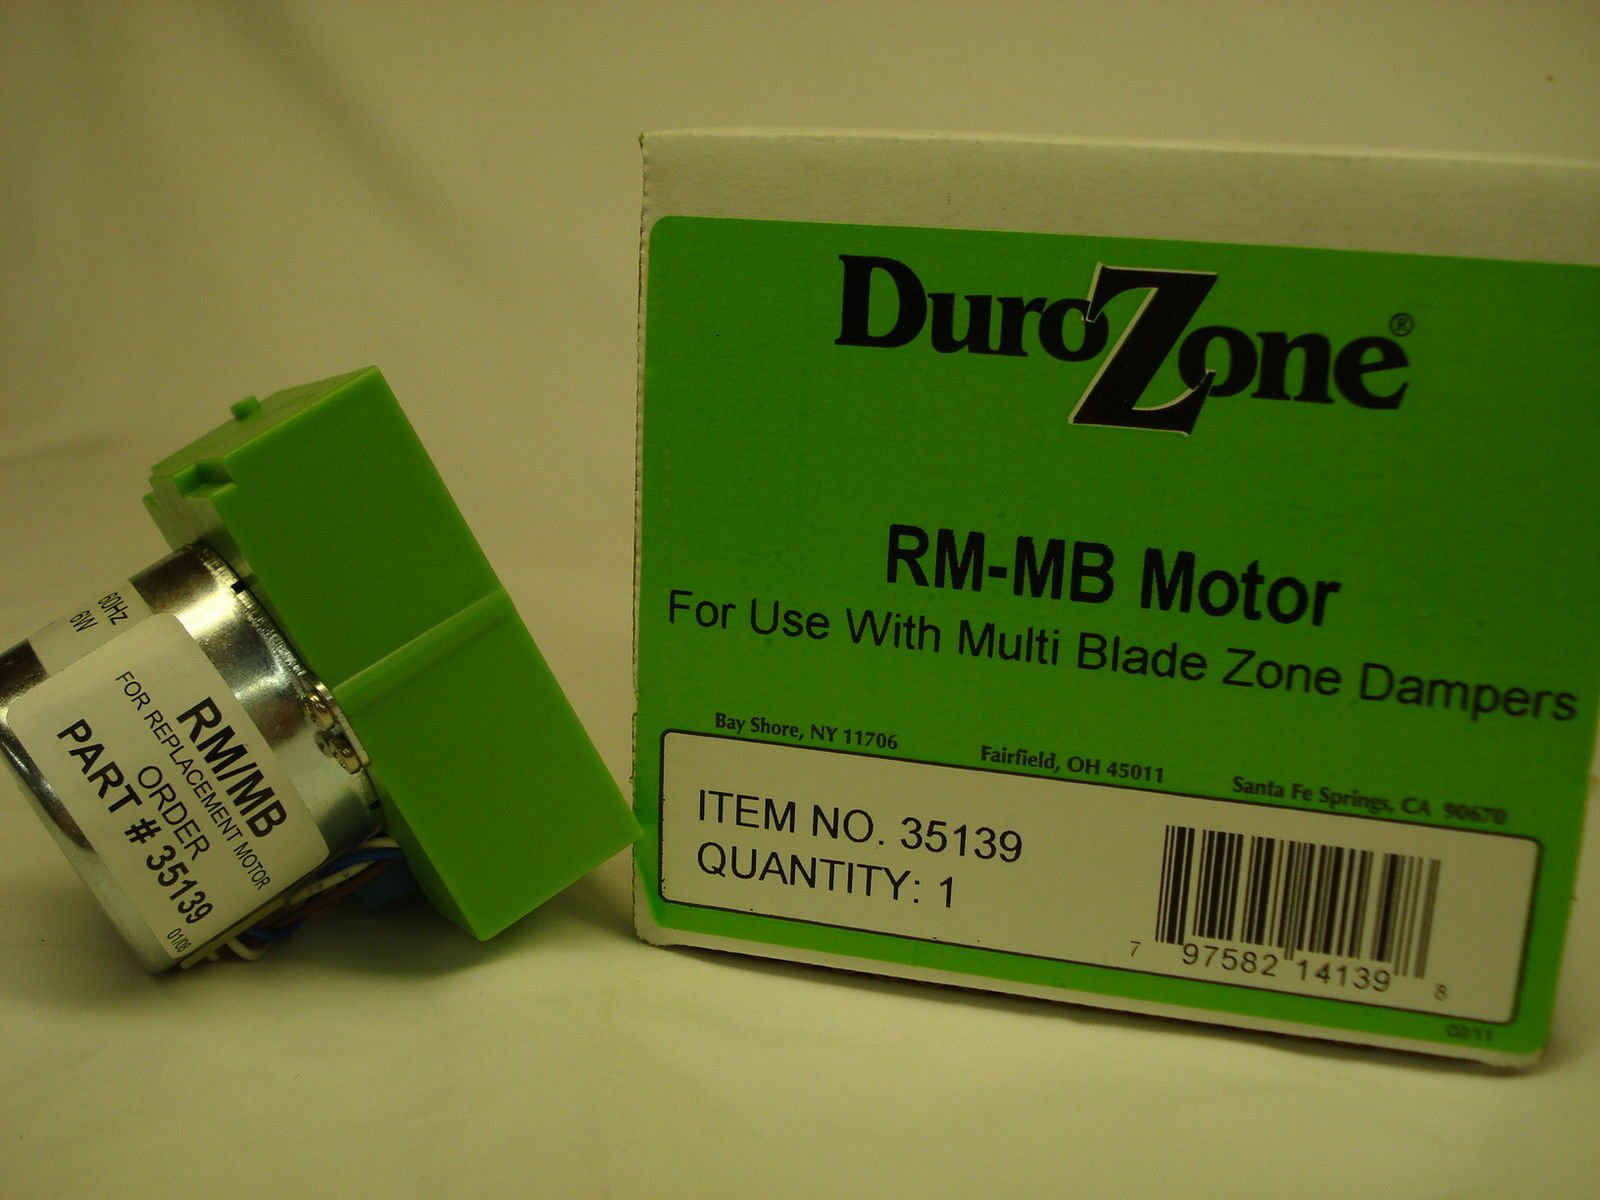 DuroZone RM-MB Replacement Damper Motor # 35139 by Duro Zone (Image #1)